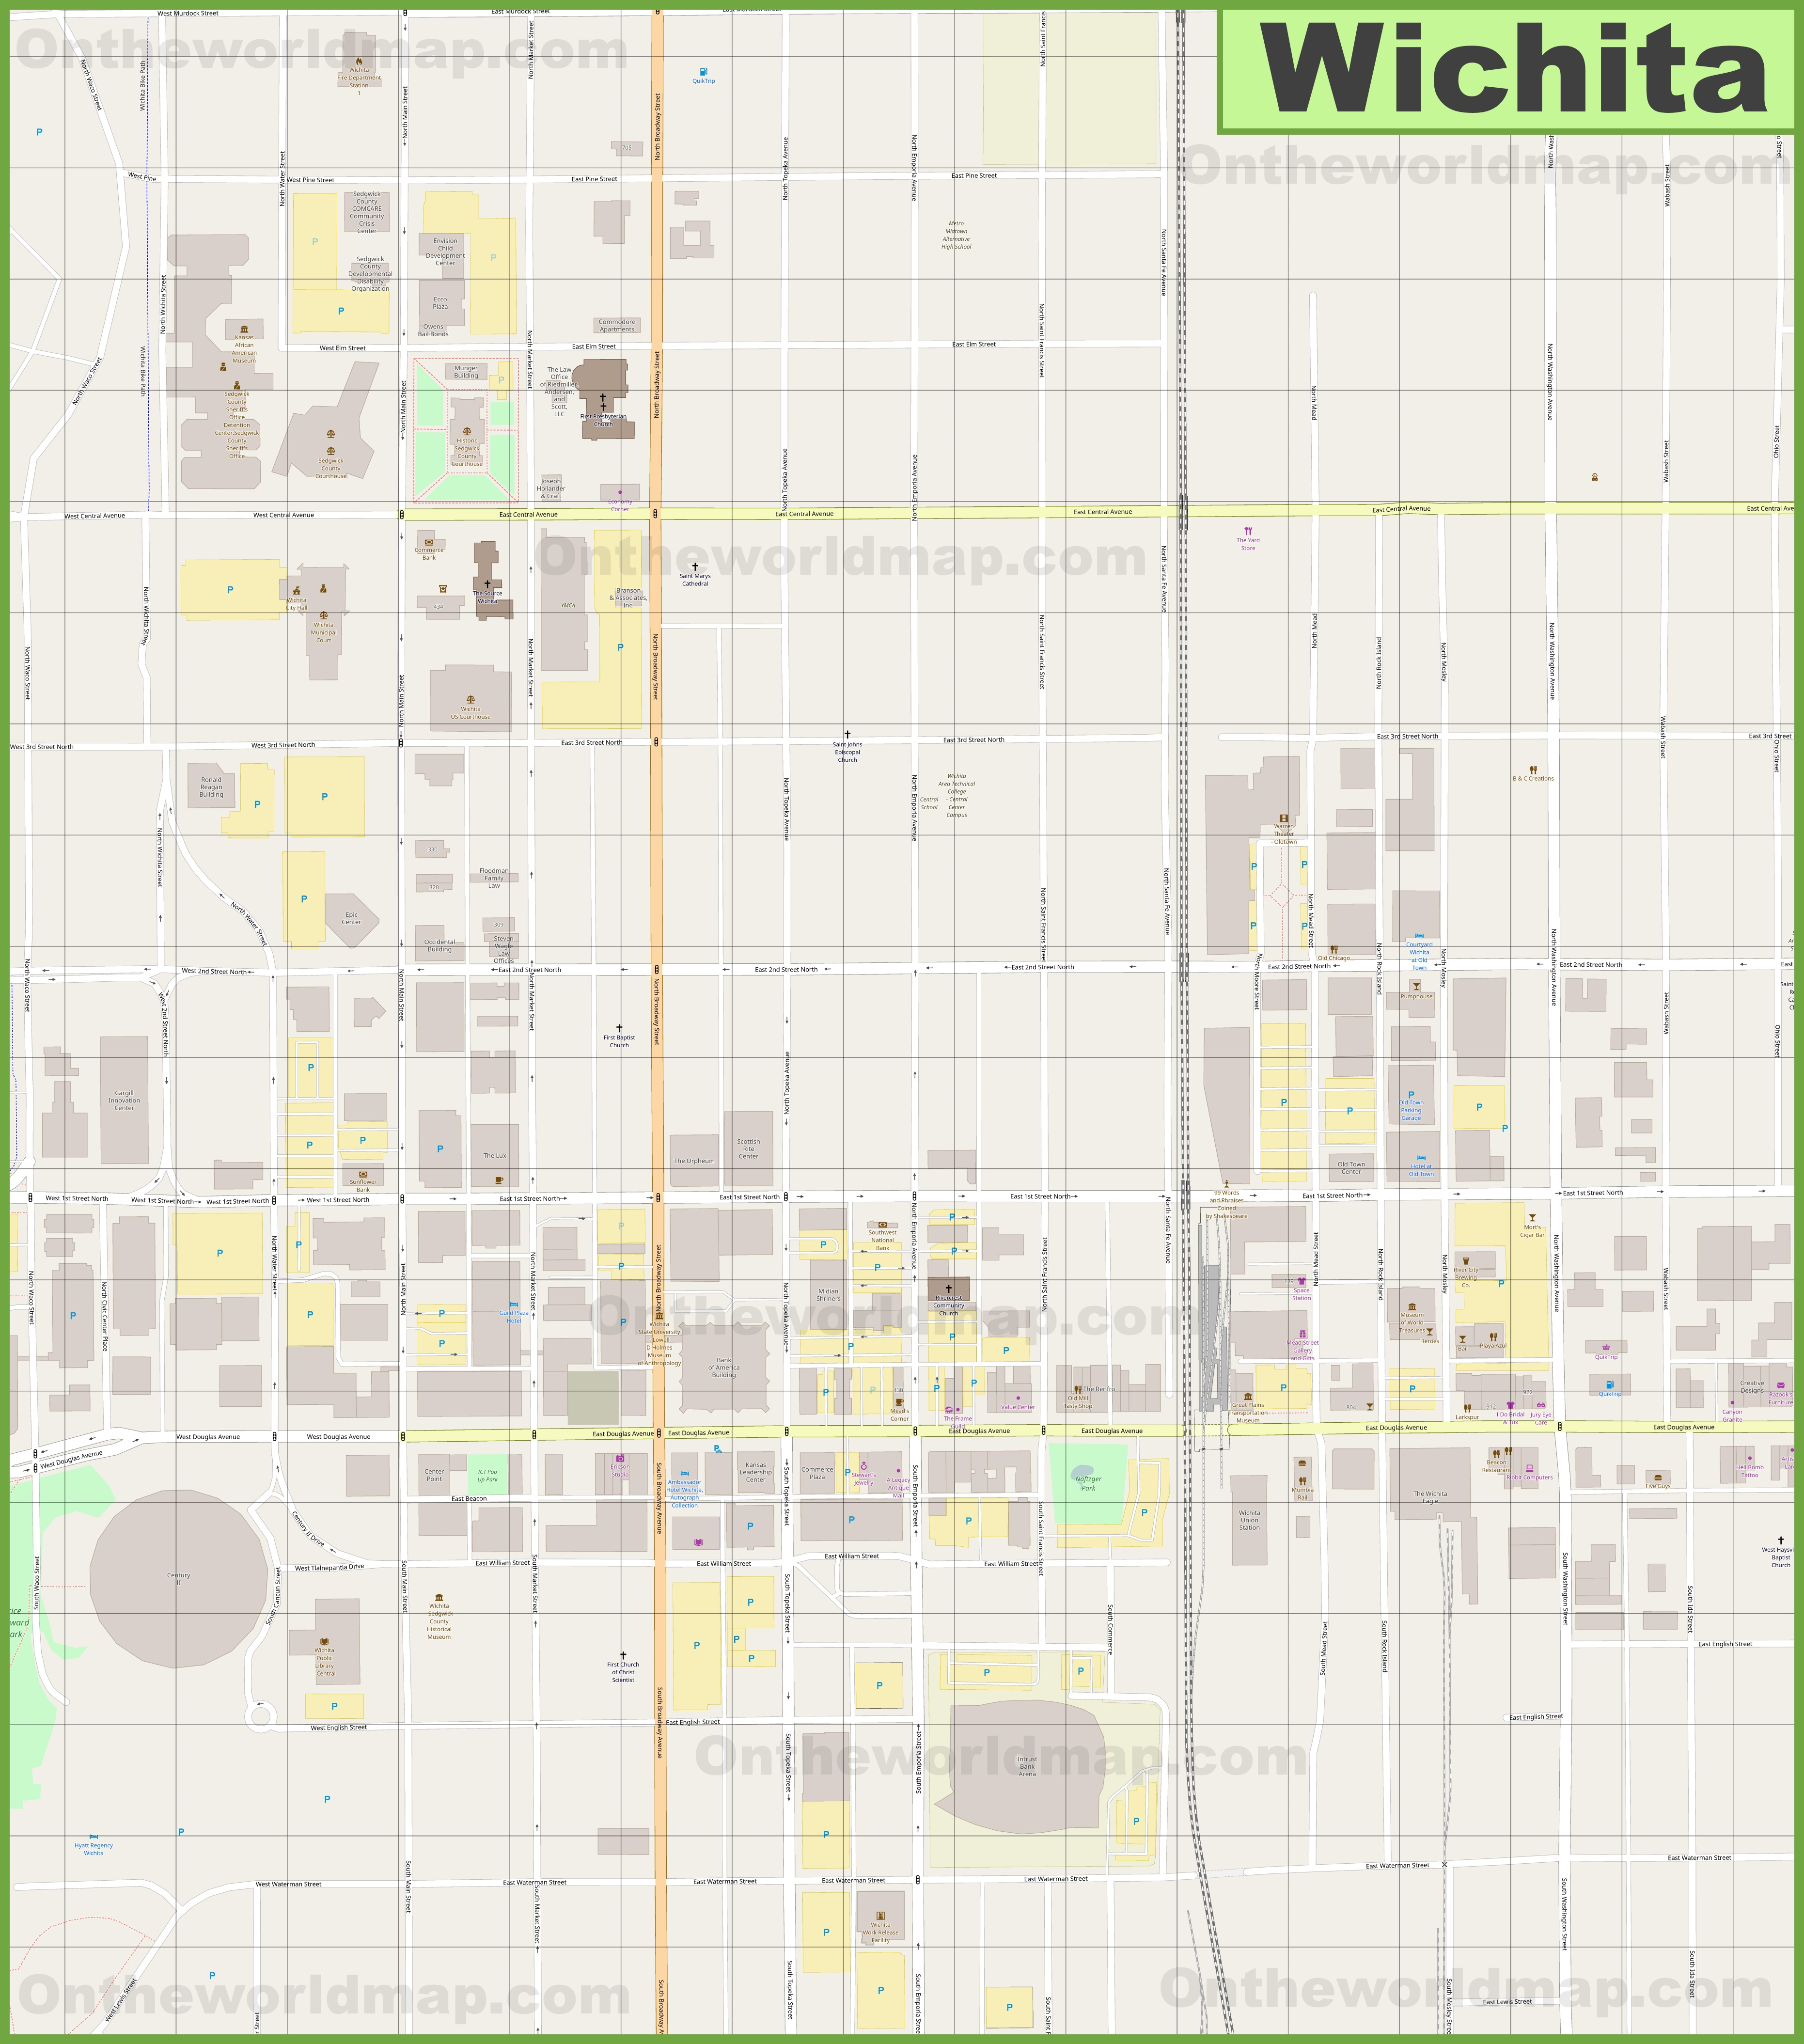 large map of south dakota minnesota html with Wichita Downtown Map on Springfield Mo Location On The Us Map also Baltimore National Aquarium Map furthermore Newport News Park Map in addition Wichita Downtown Map together with Santa Monica Street Map.